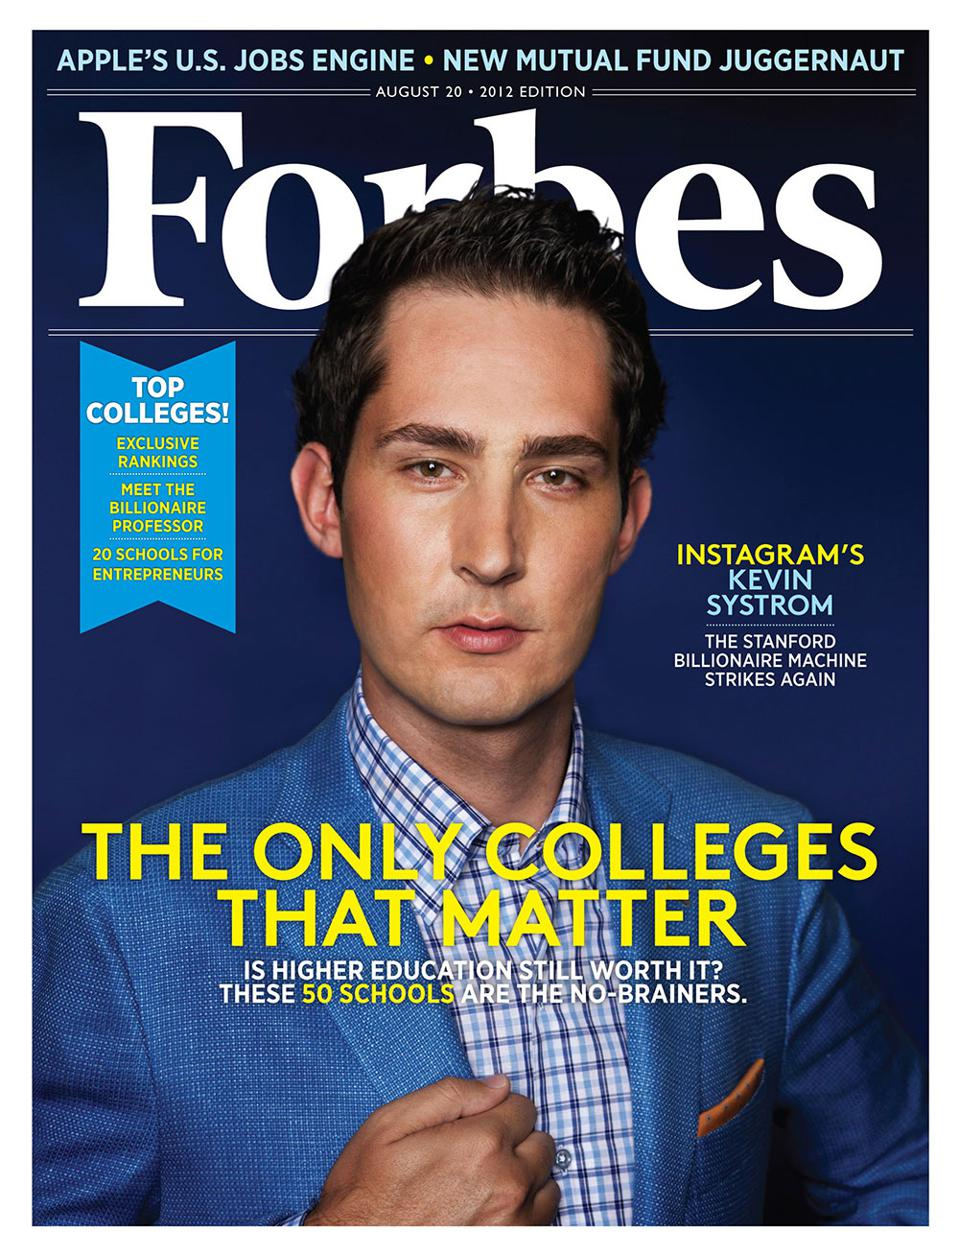 Kevin Systrom In His Own Words: How Instagram Was Founded